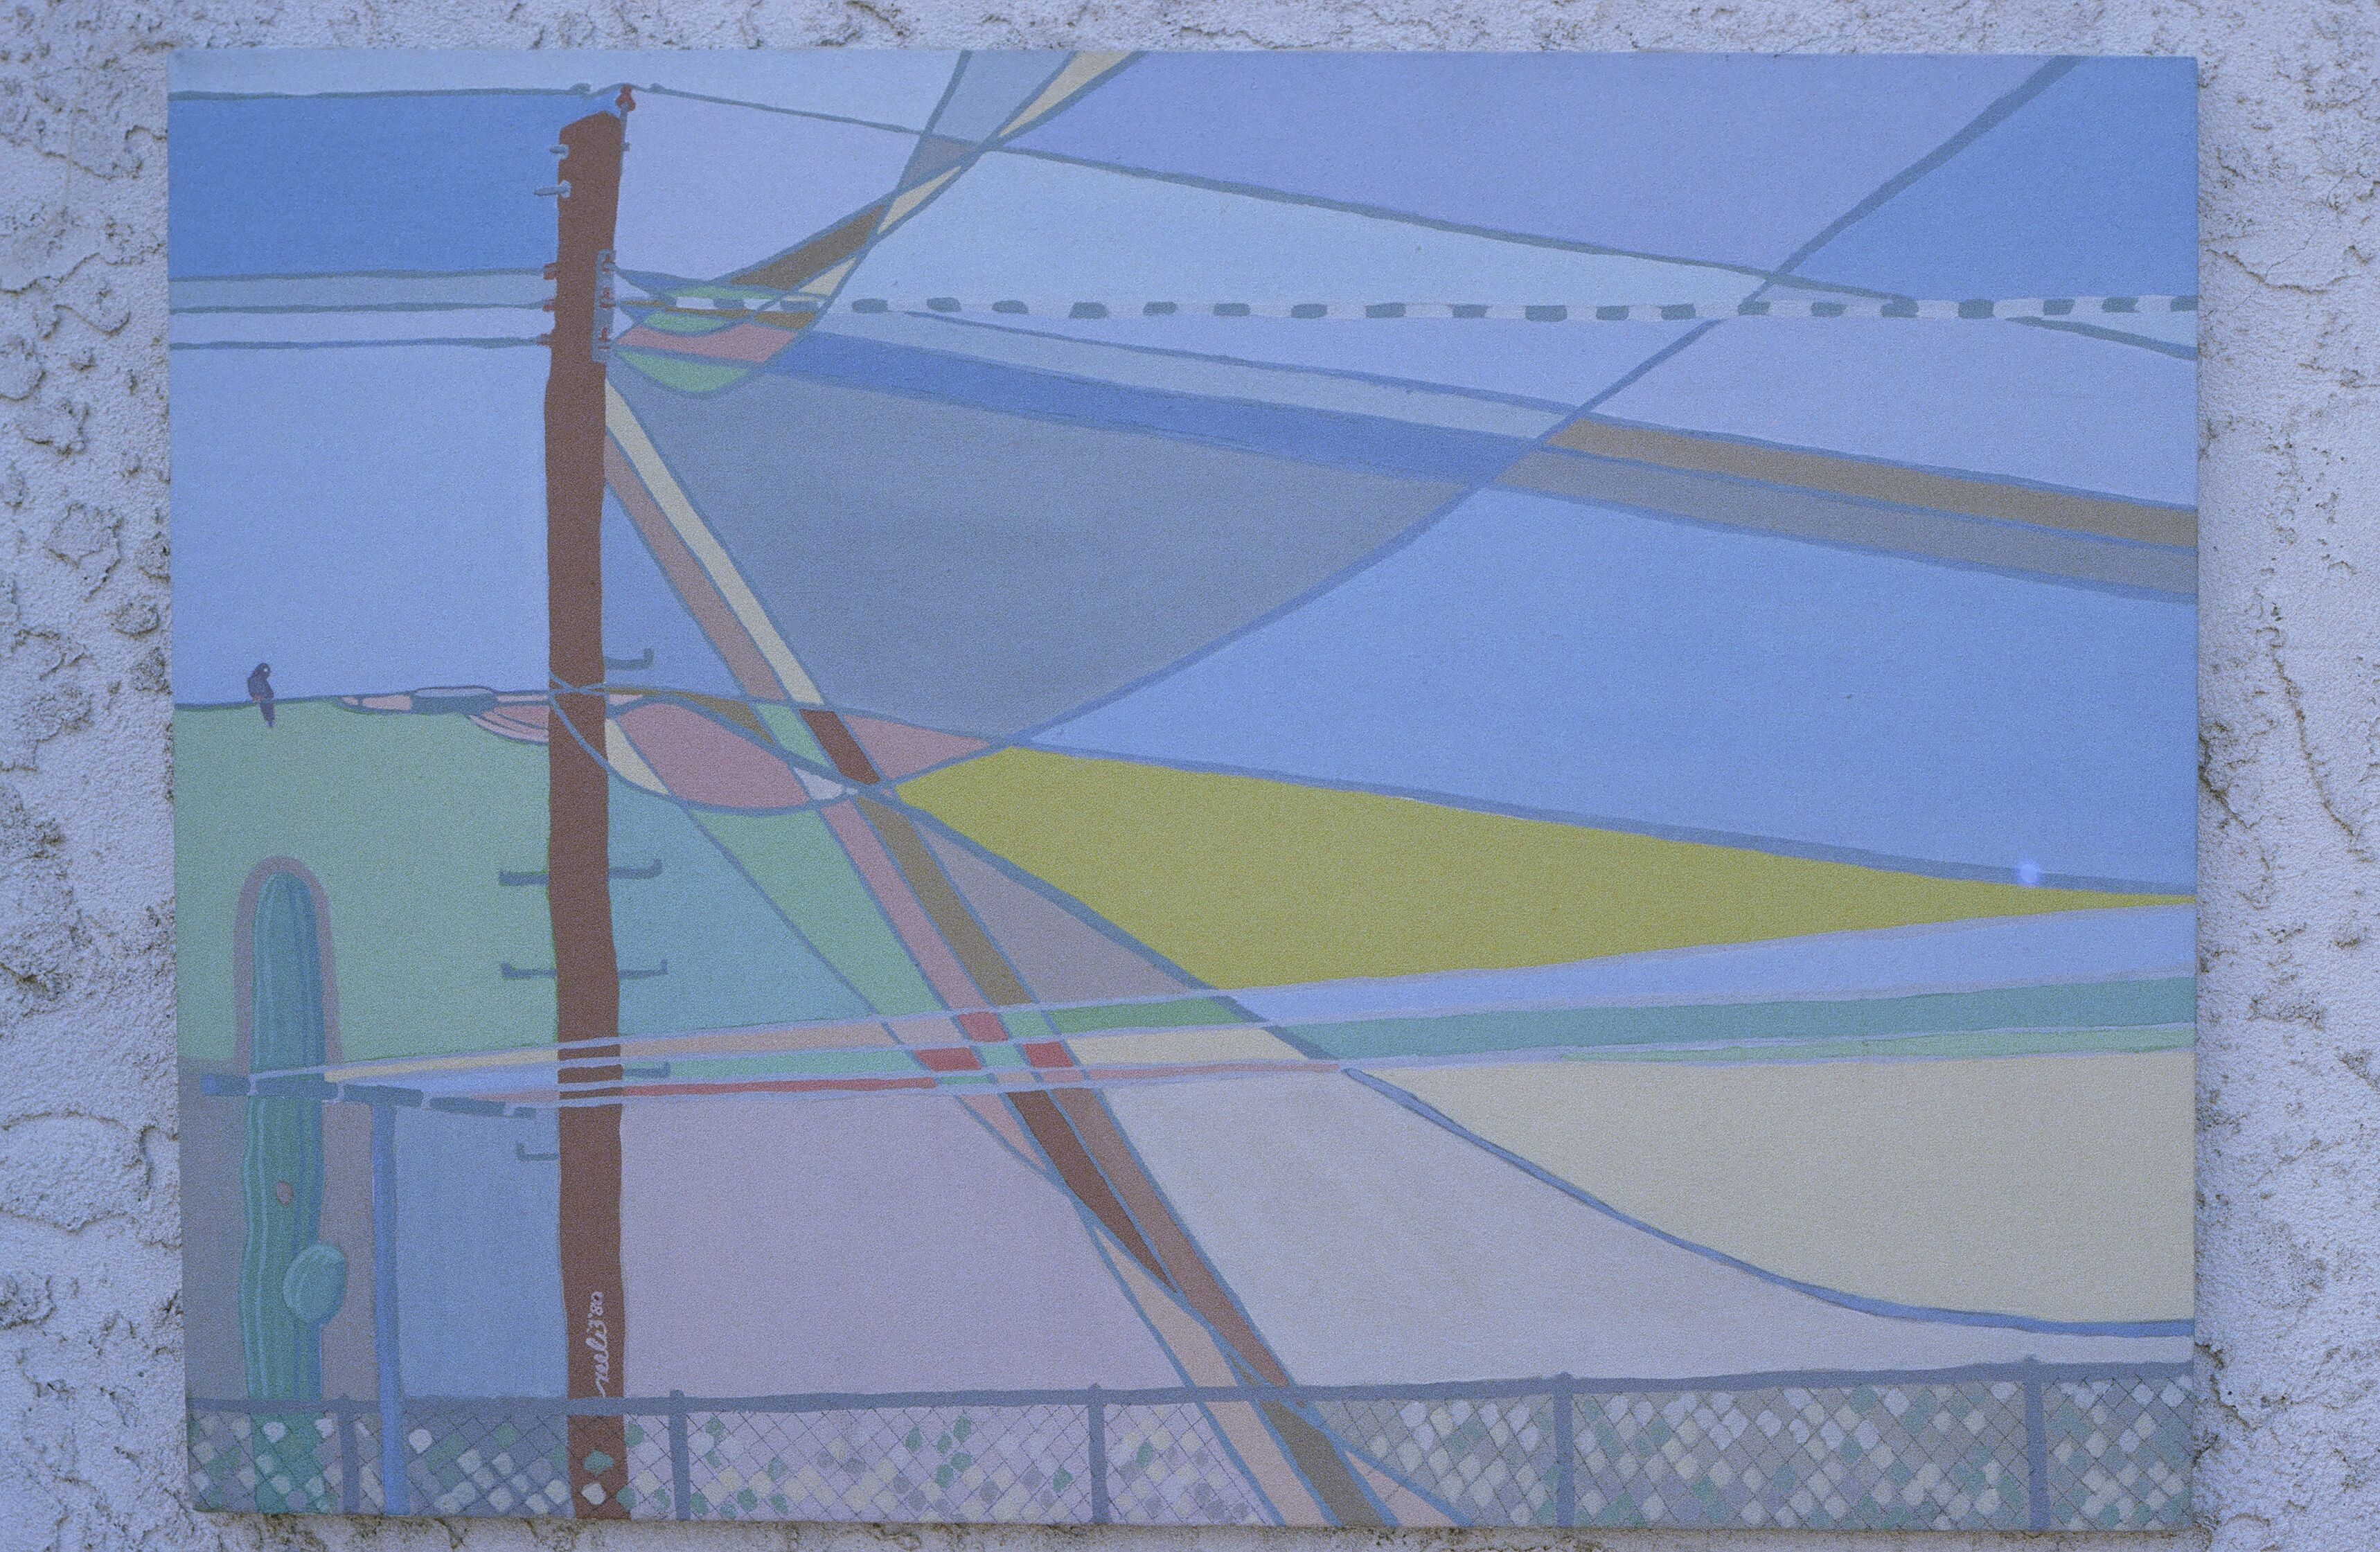 45 SPRING WIRES | Possible painting | Utility pole, Wire